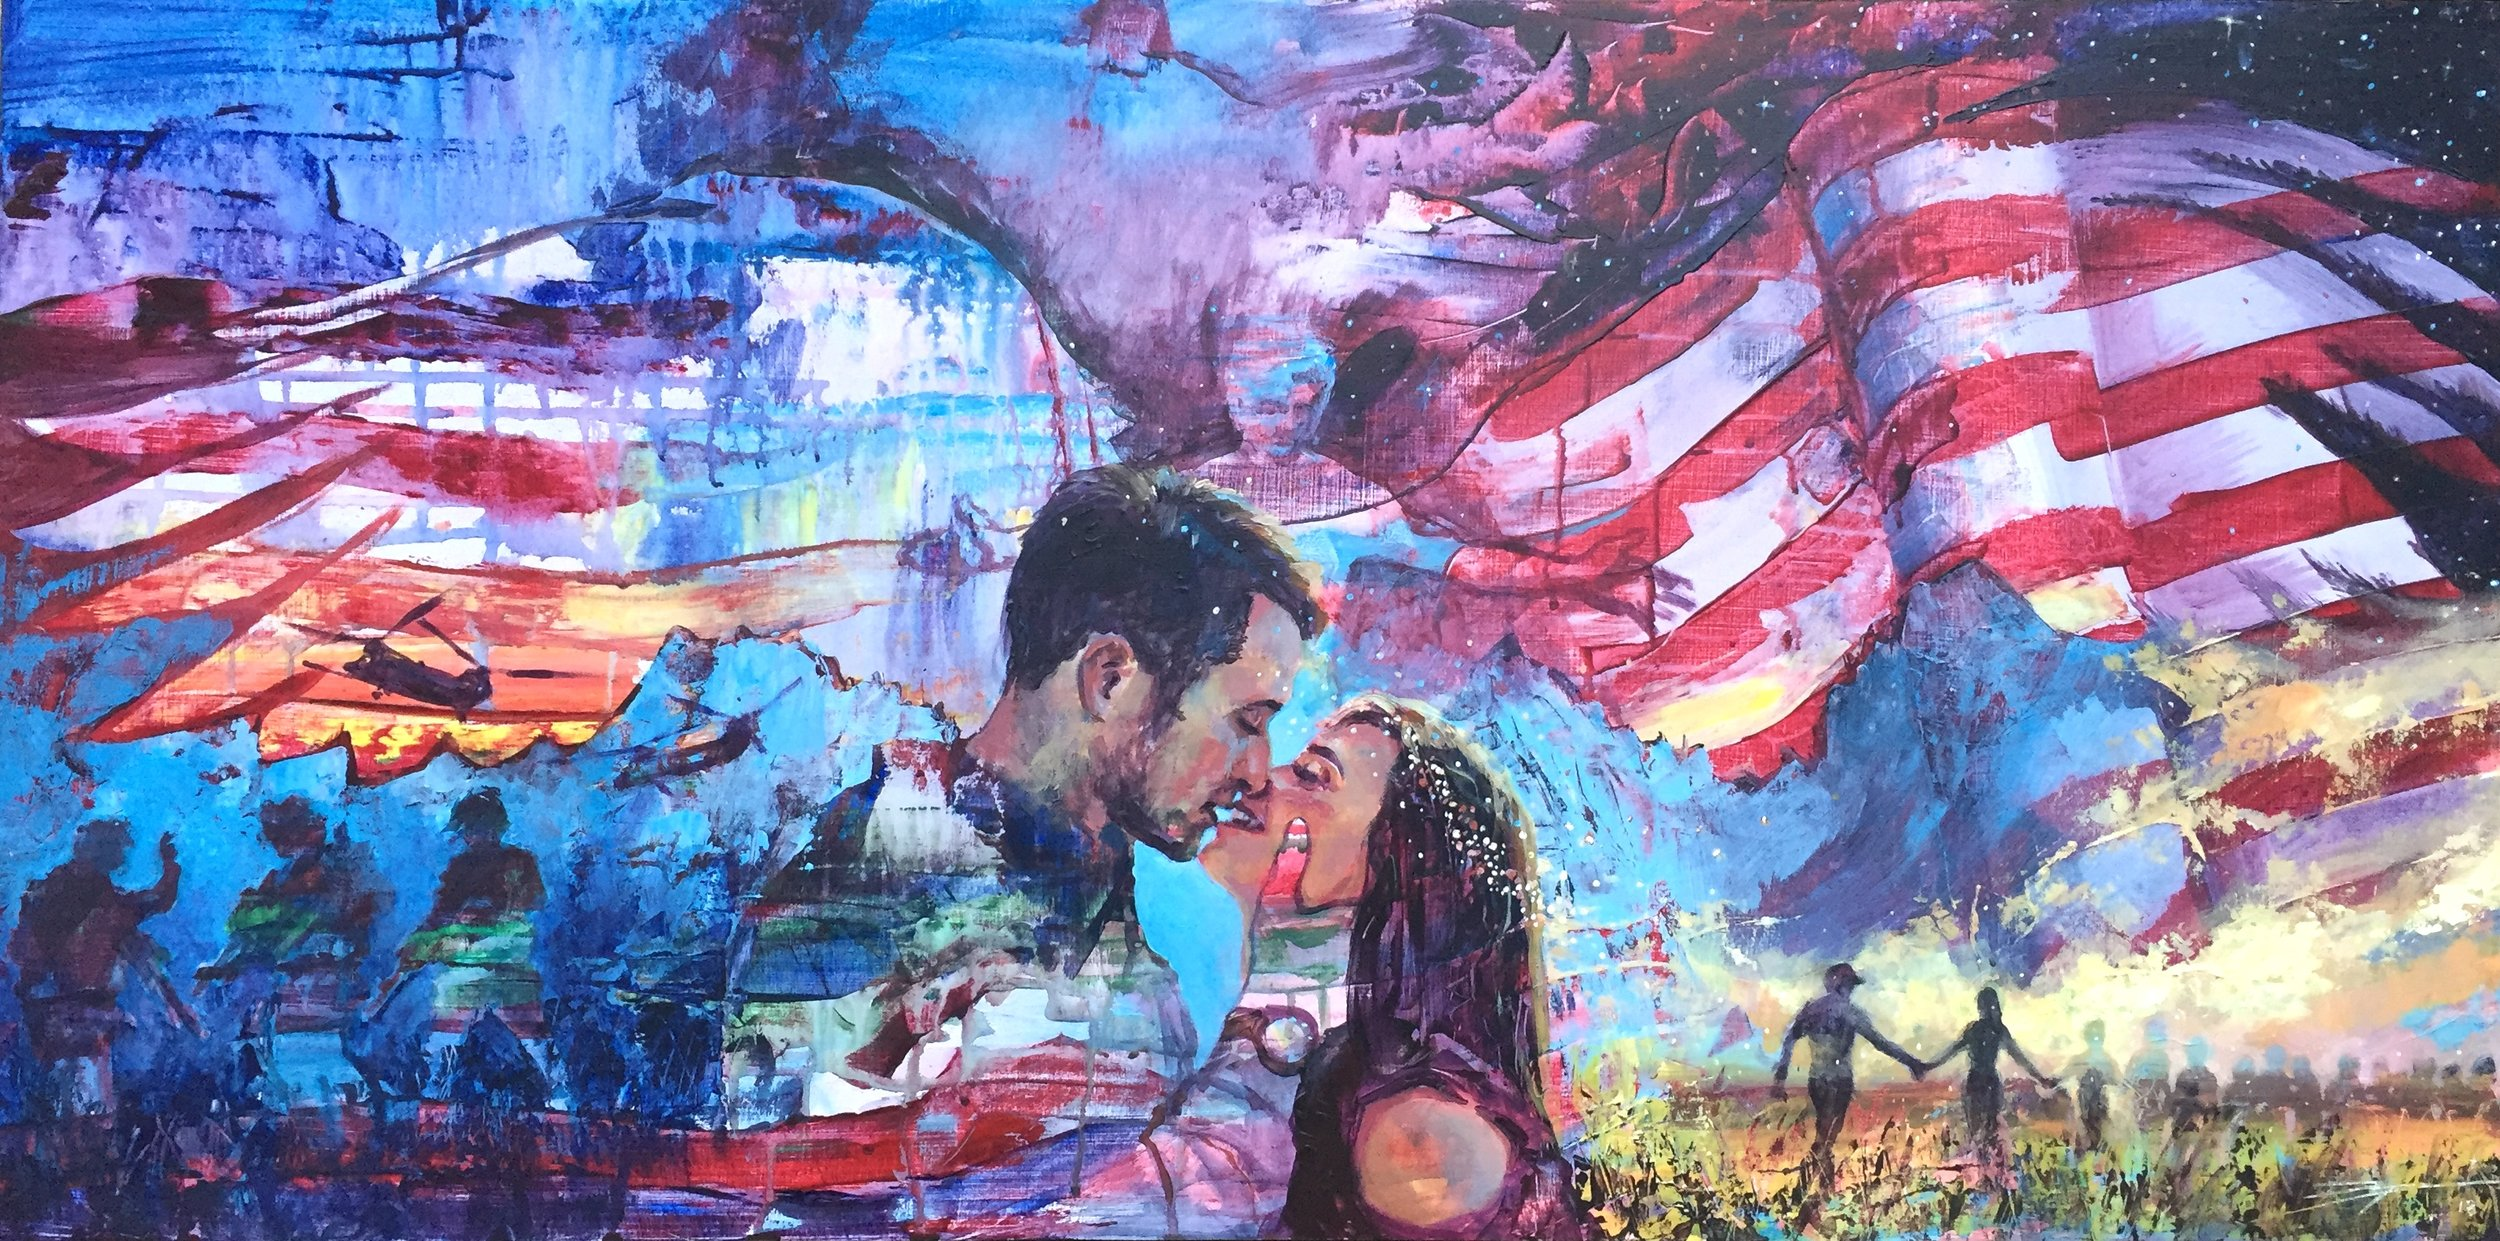 "The first of the wedding paintings was a commissions by Katie Timmerman for her friends Luke and Lindsey who were getting married on 10.29.18. Luke had been a sniper with the Army Rangers and Linsey is a school teacher. The image is built around the couple and an angel just behind them referencing their favorite verse, Psalm 91:11 ""For he will order his angels to protect you wherever you go."" [NLT] 18x36"" Acrylic."